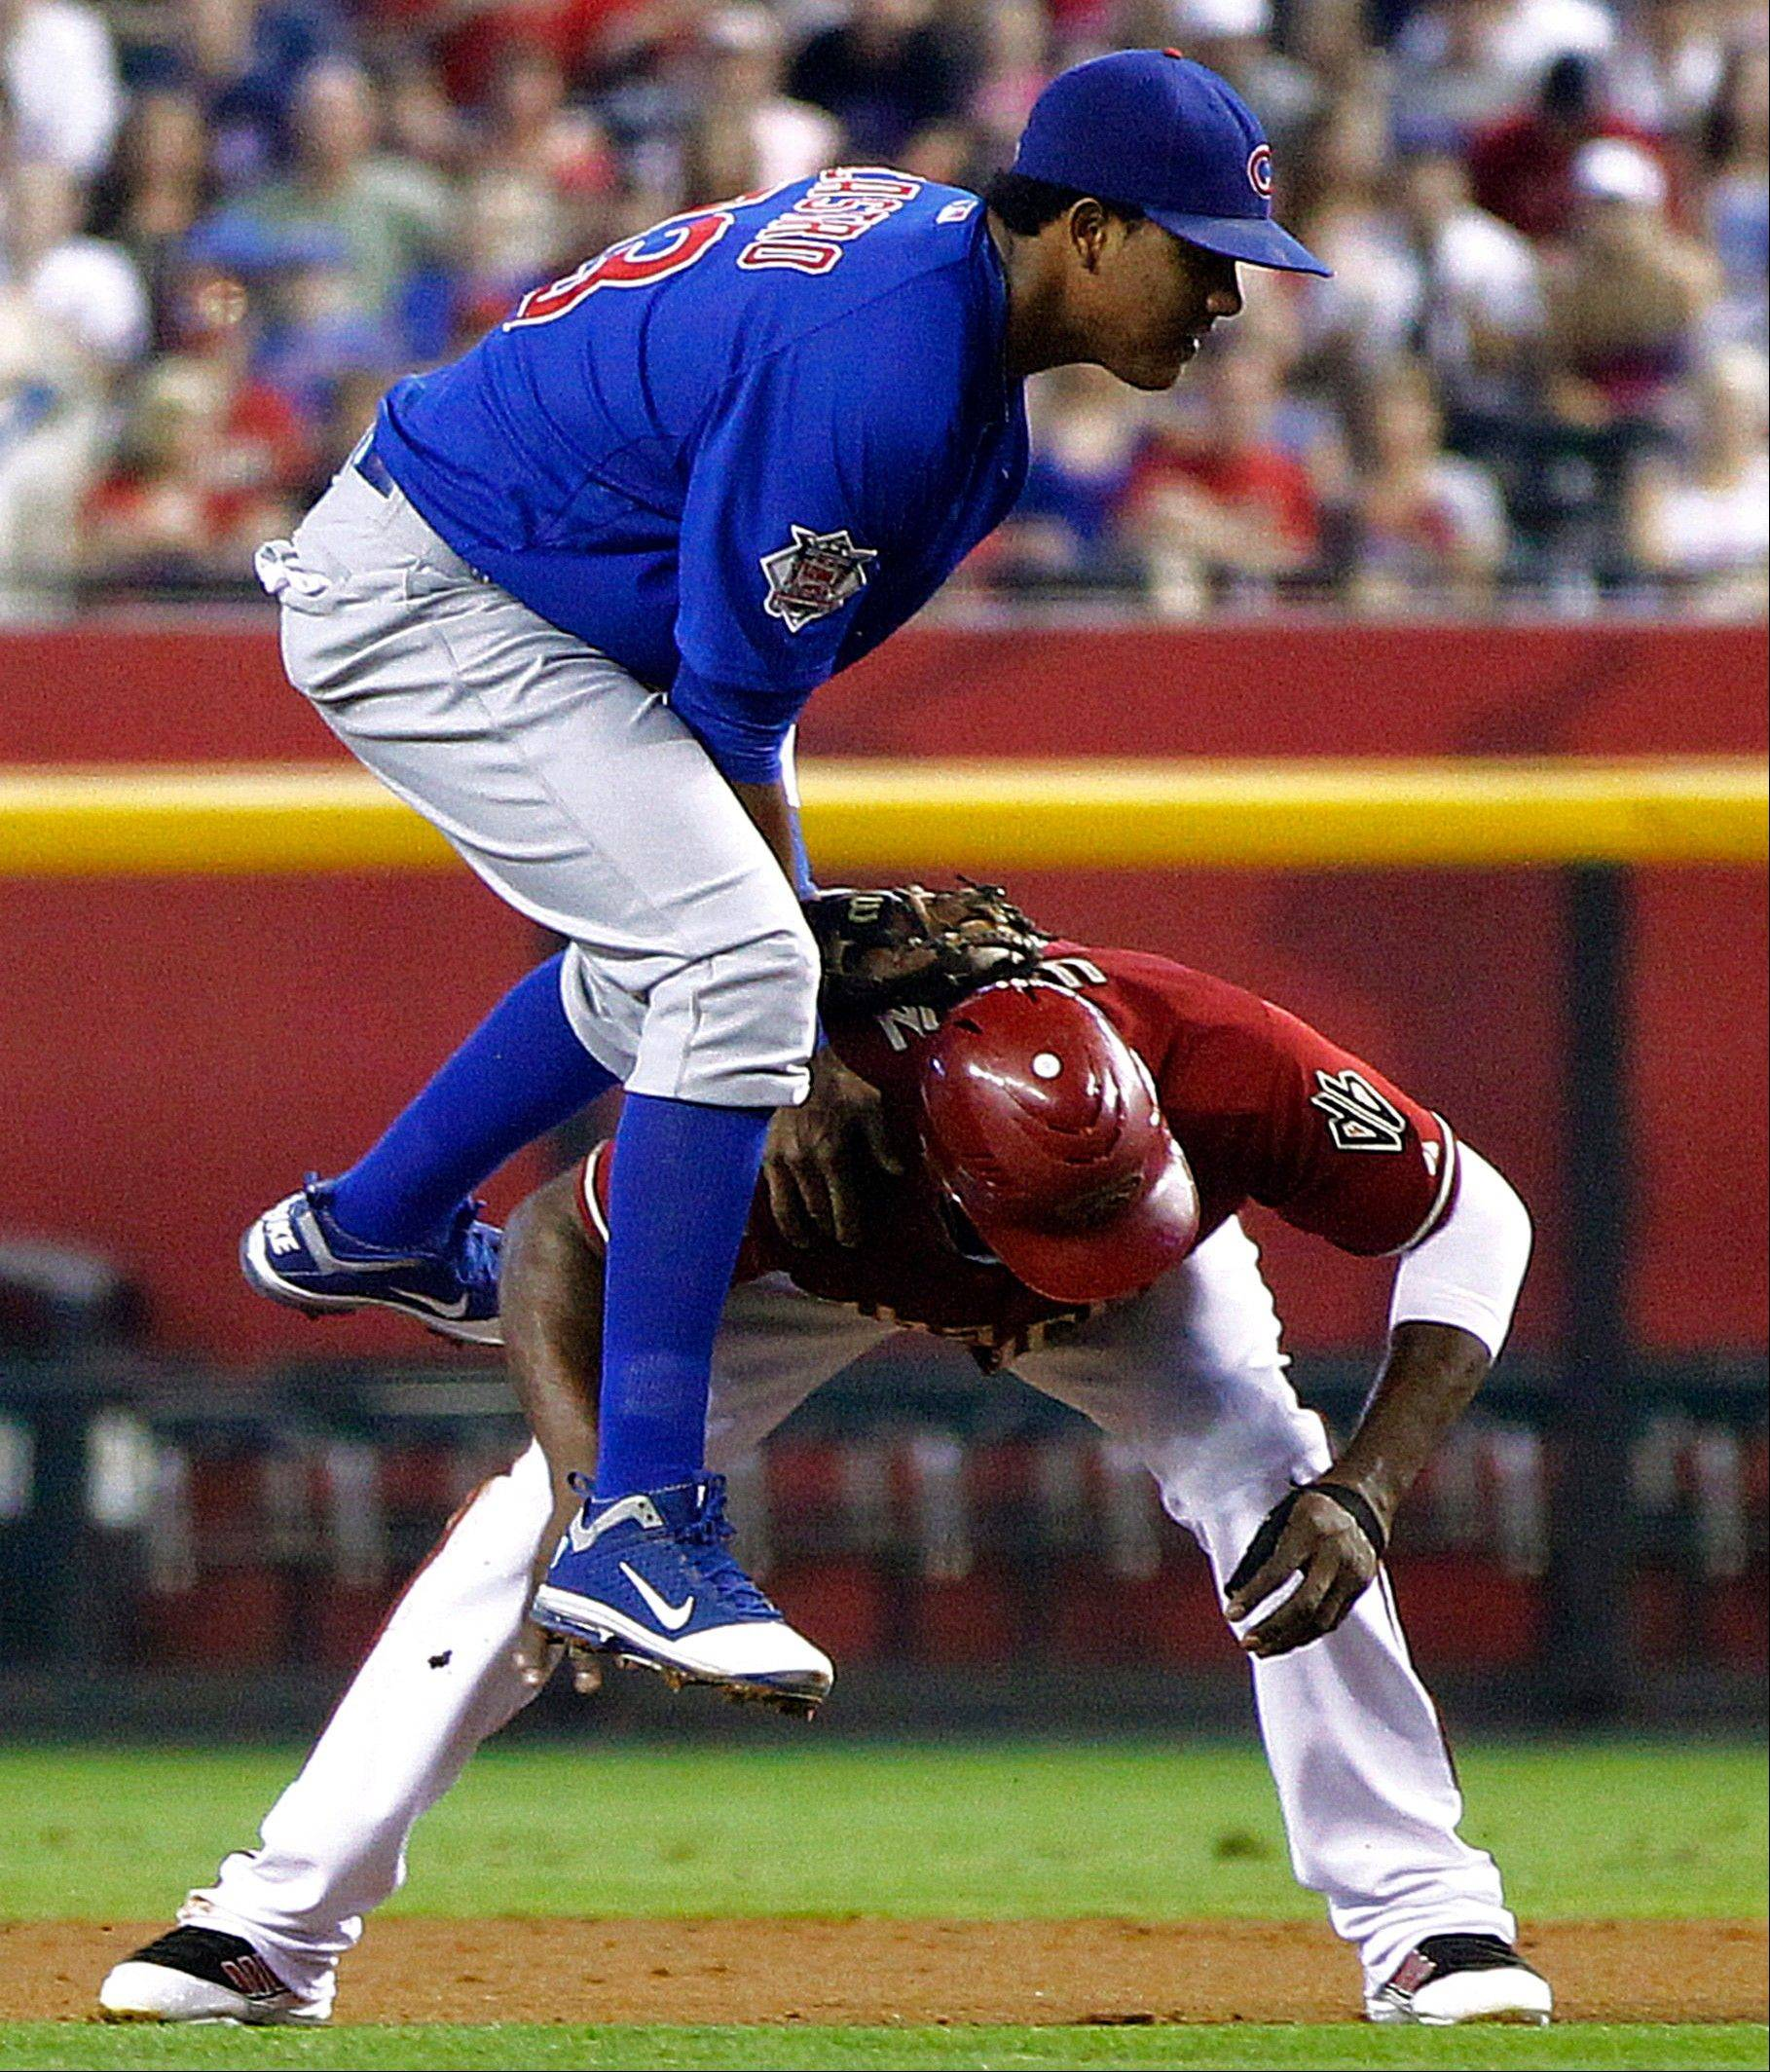 Shortstop Starlin Castro, he colliding with the Diamondbacks' Justin Upton during a rundown Sunday, is the most likely player to be representing the Cubs at the All-Star Game.